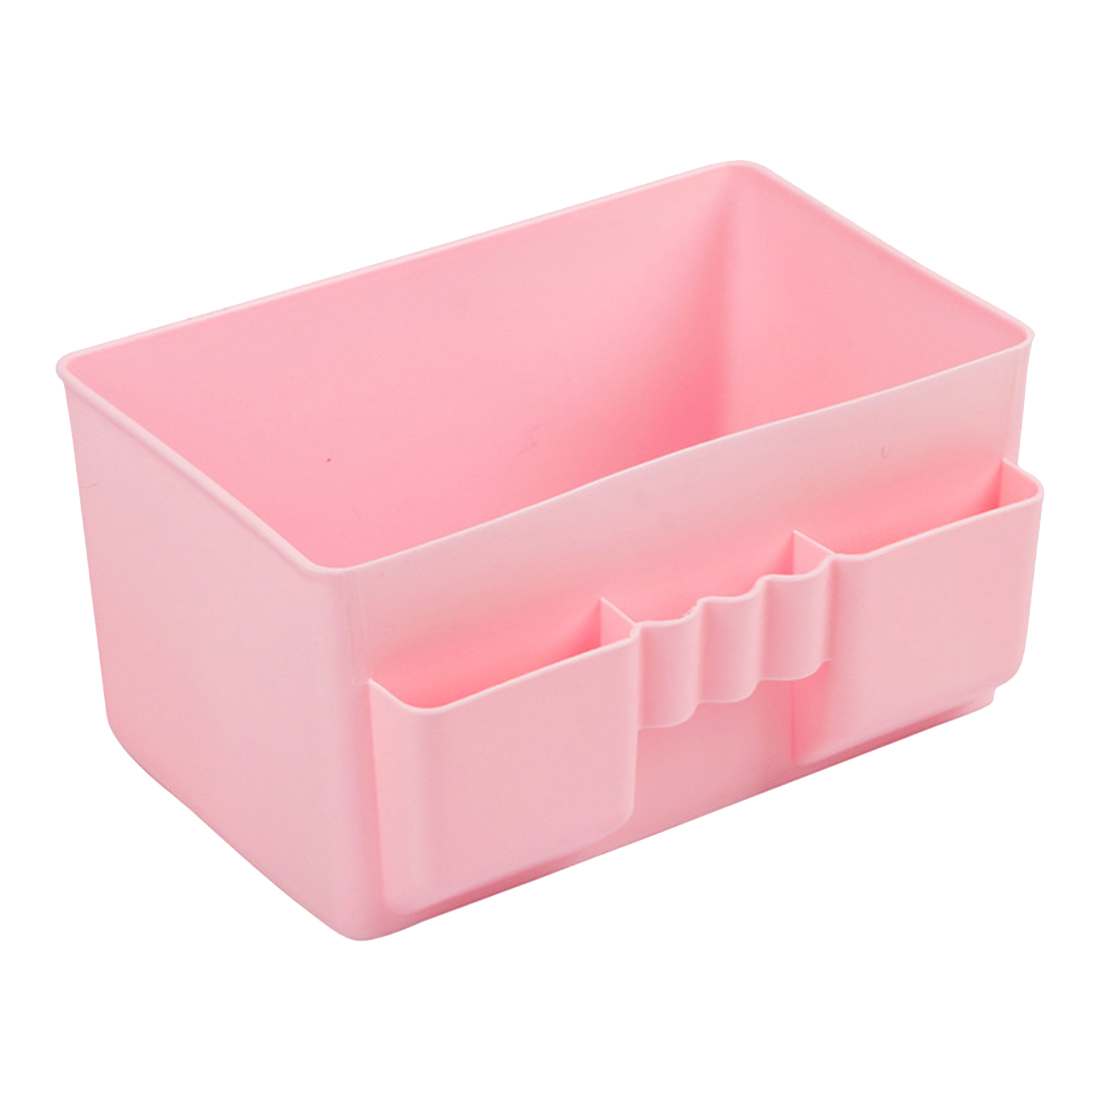 Hot Sale Cute Plastic Office Desktop Storage Boxes Makeup Organizer Storage Box #69829